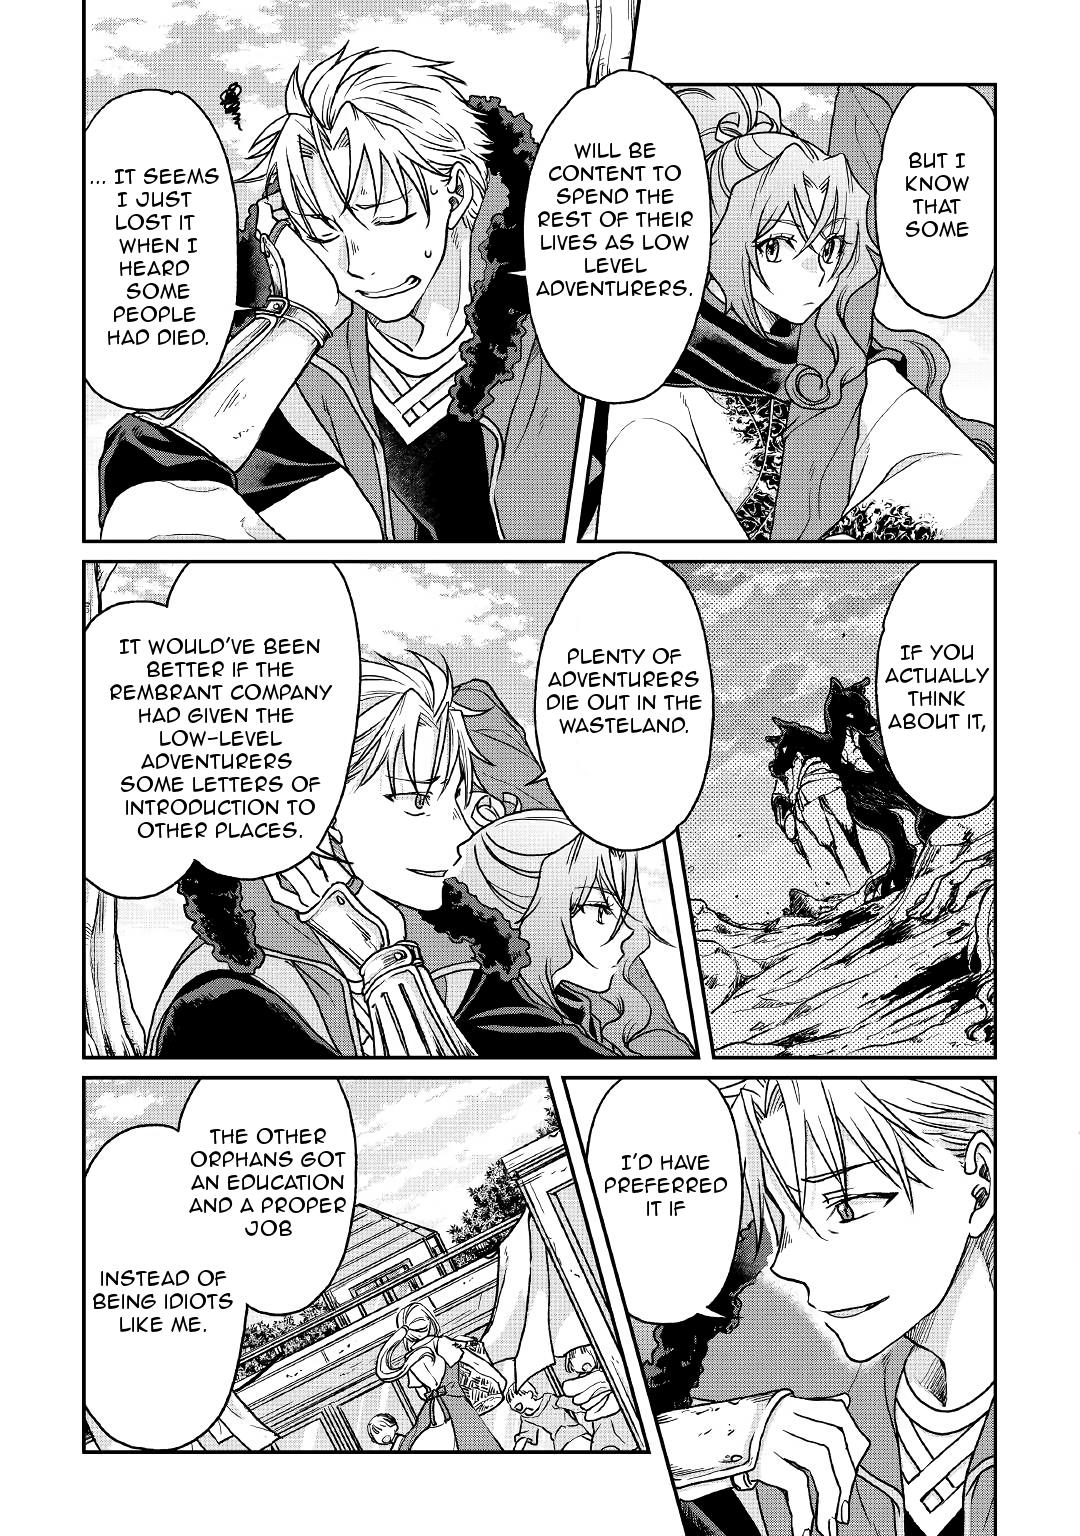 Moon-led Journey Across Another World - Chapter 25